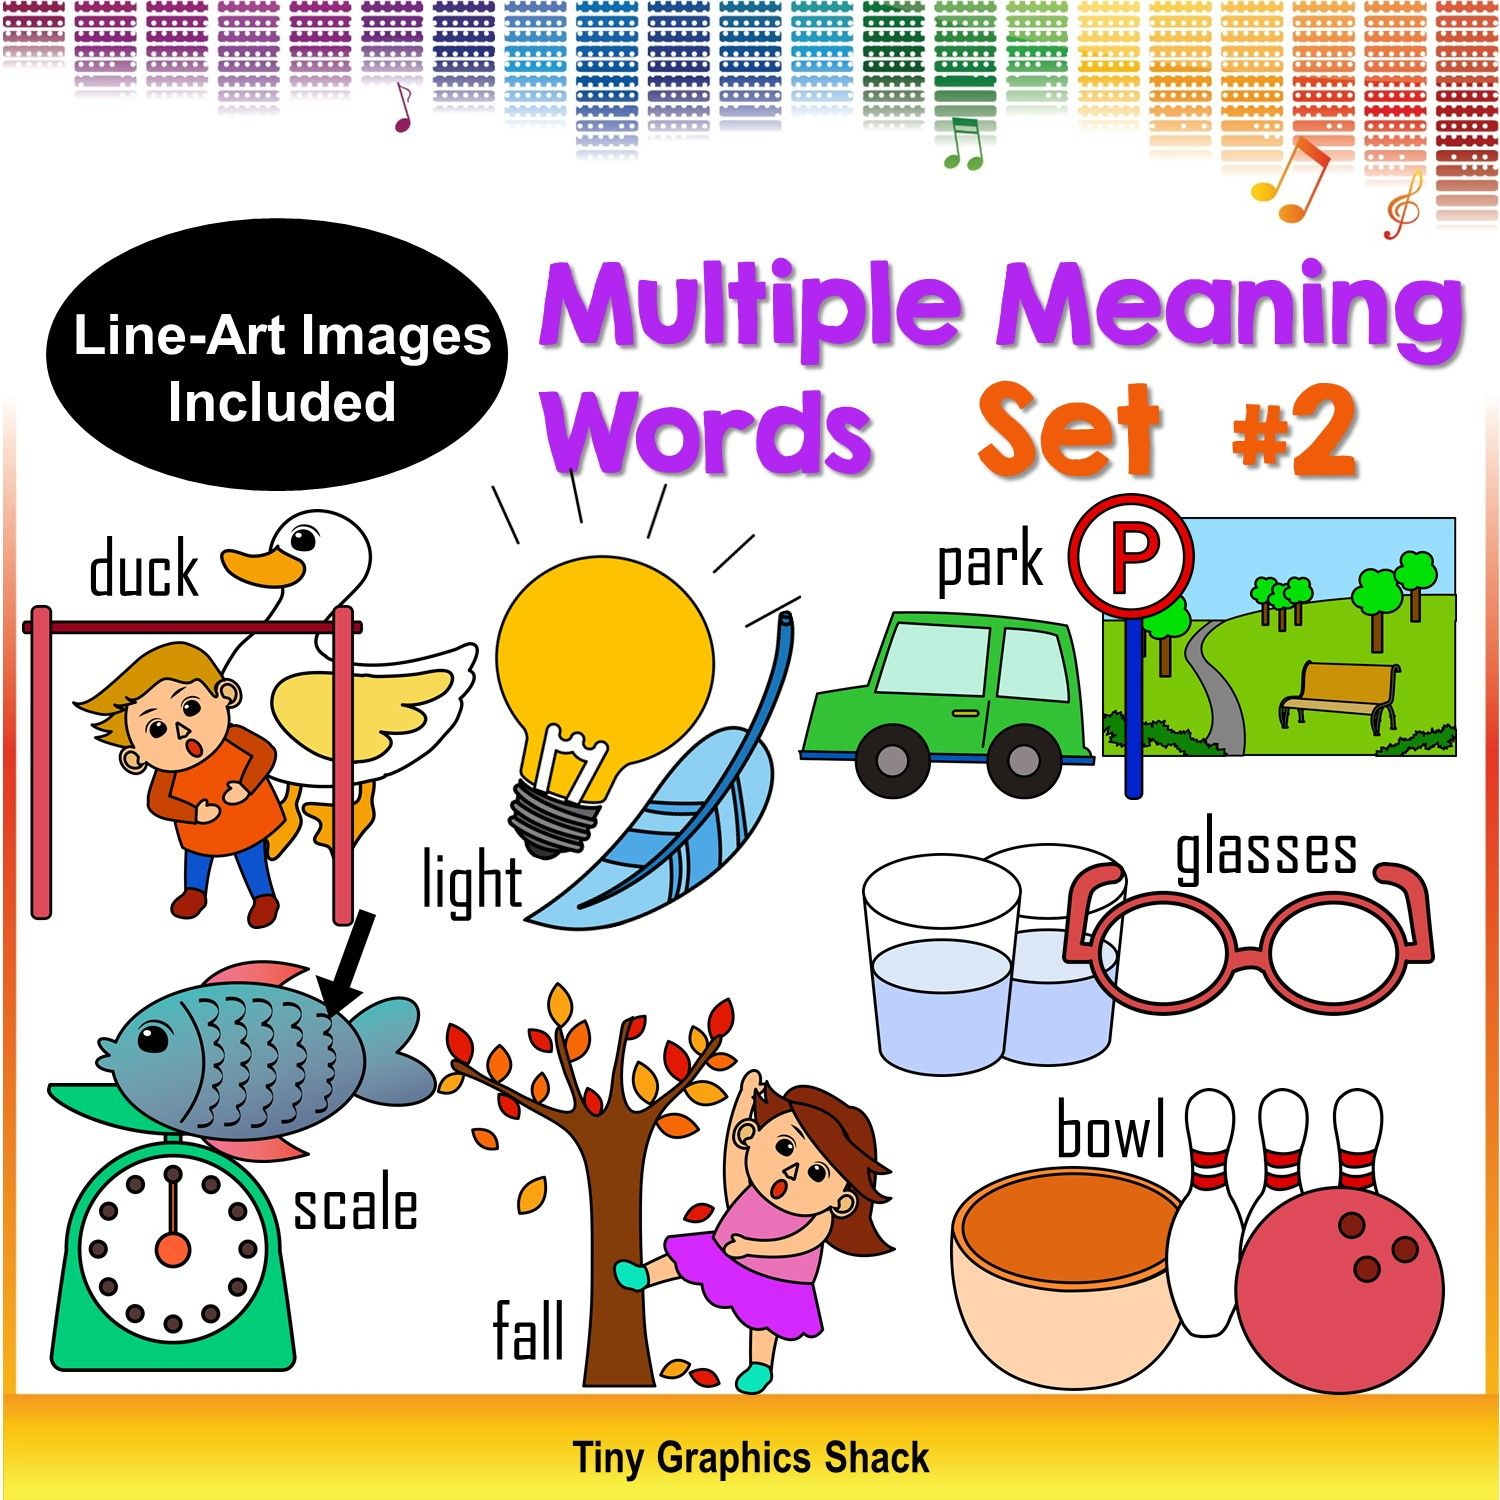 Multiple Meaning Words Clipart Set #2 (Homonyms).